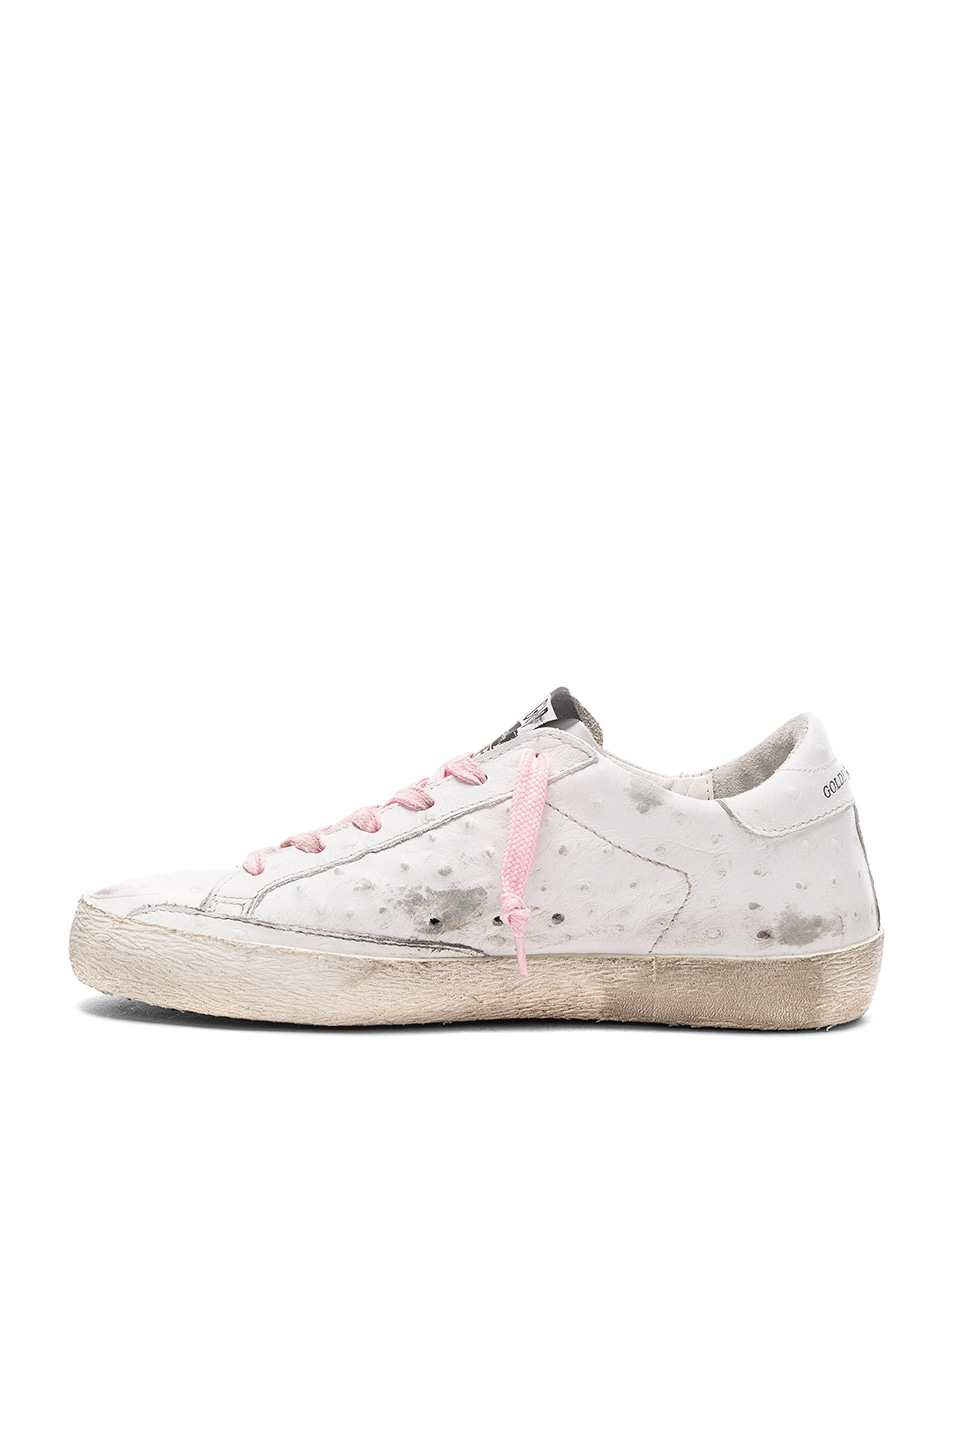 Image 5 of Golden Goose Leather Superstar Low Sneakers in White & Pink